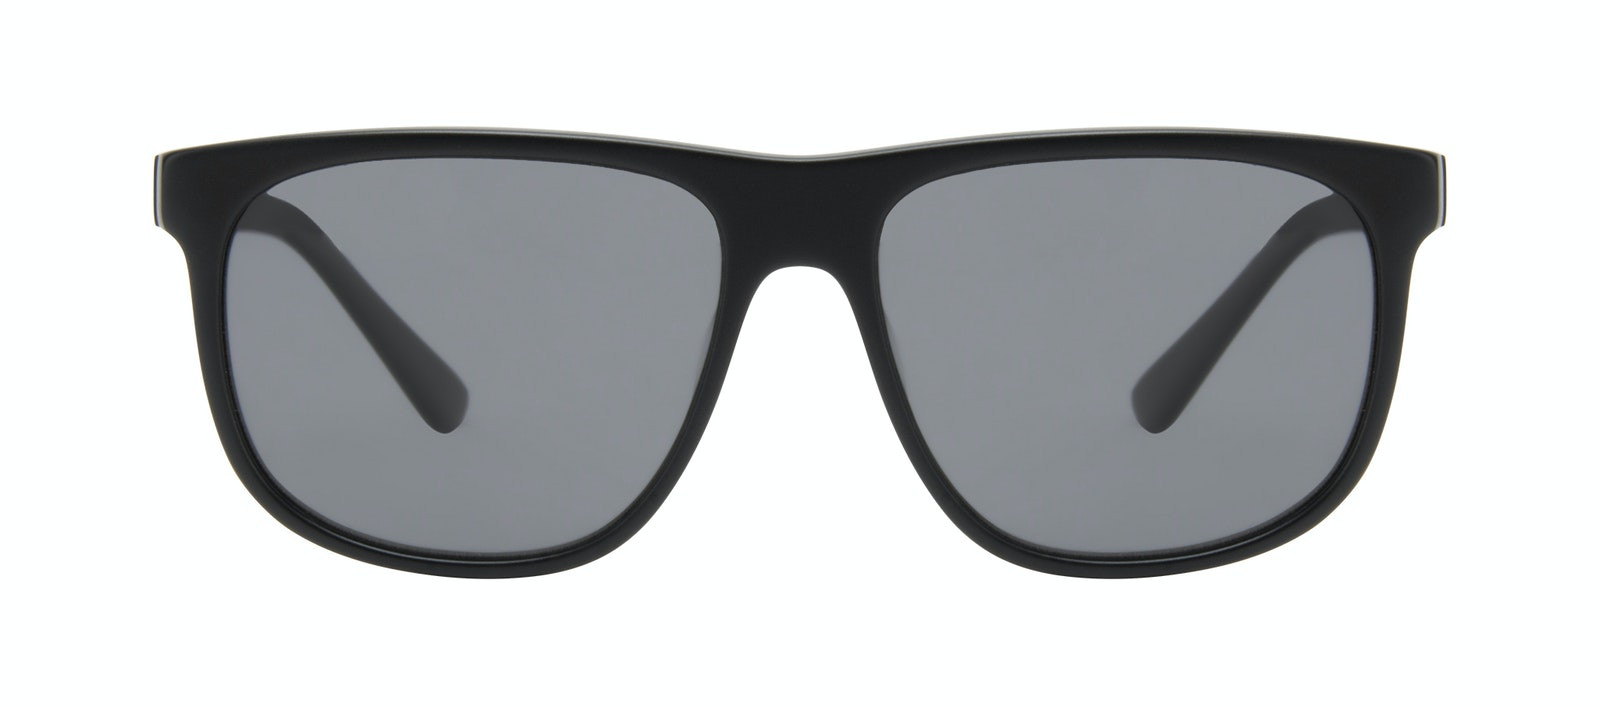 Affordable Fashion Glasses Square Sunglasses Men Rush Onyx Matte Front